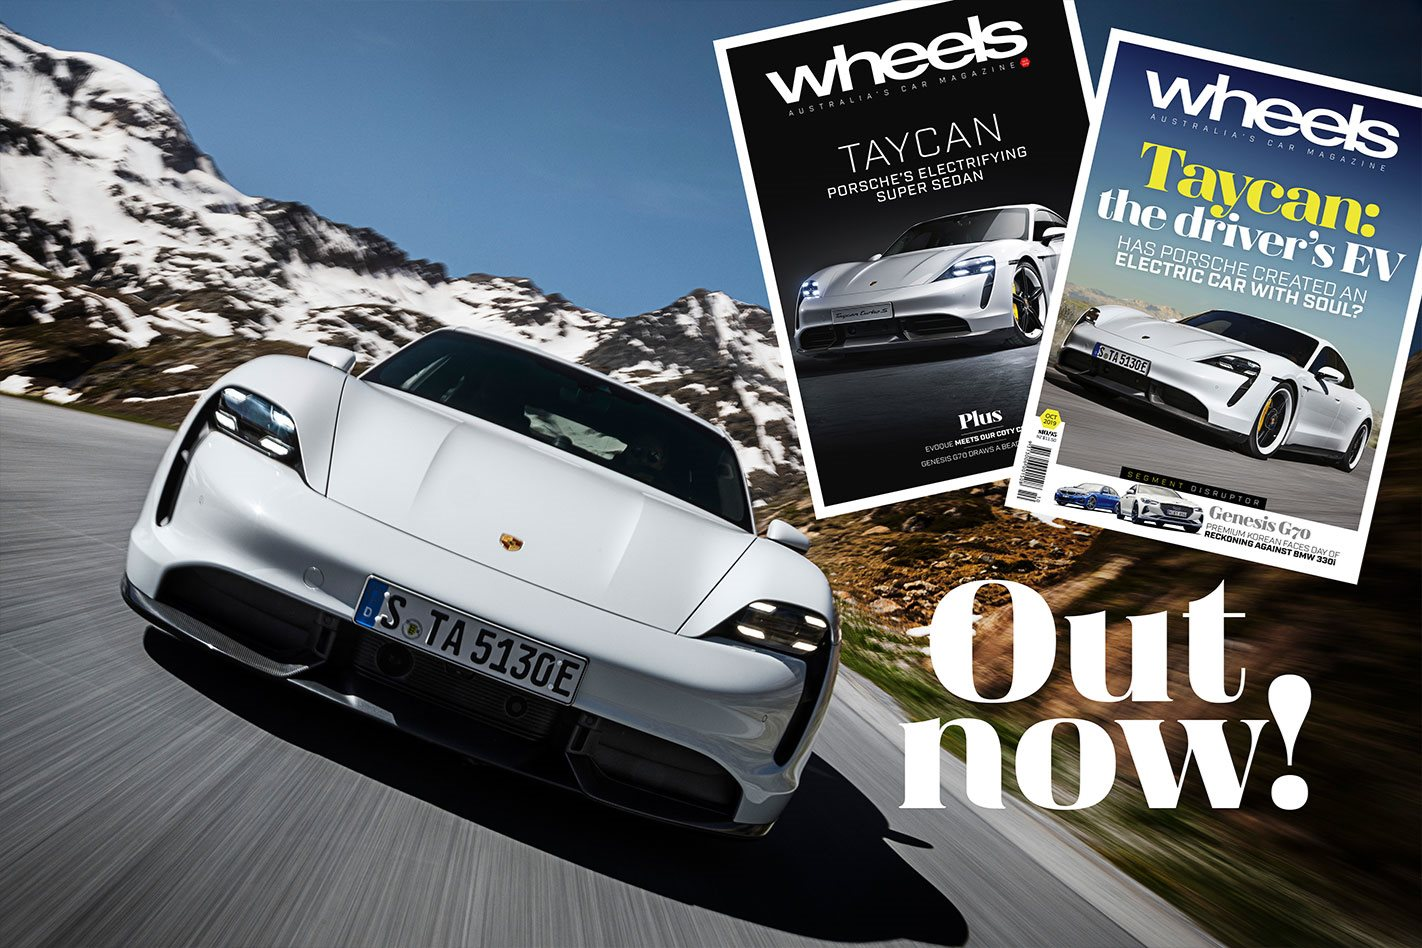 Finally, an EV for drivers! New issue of Wheels mag out now